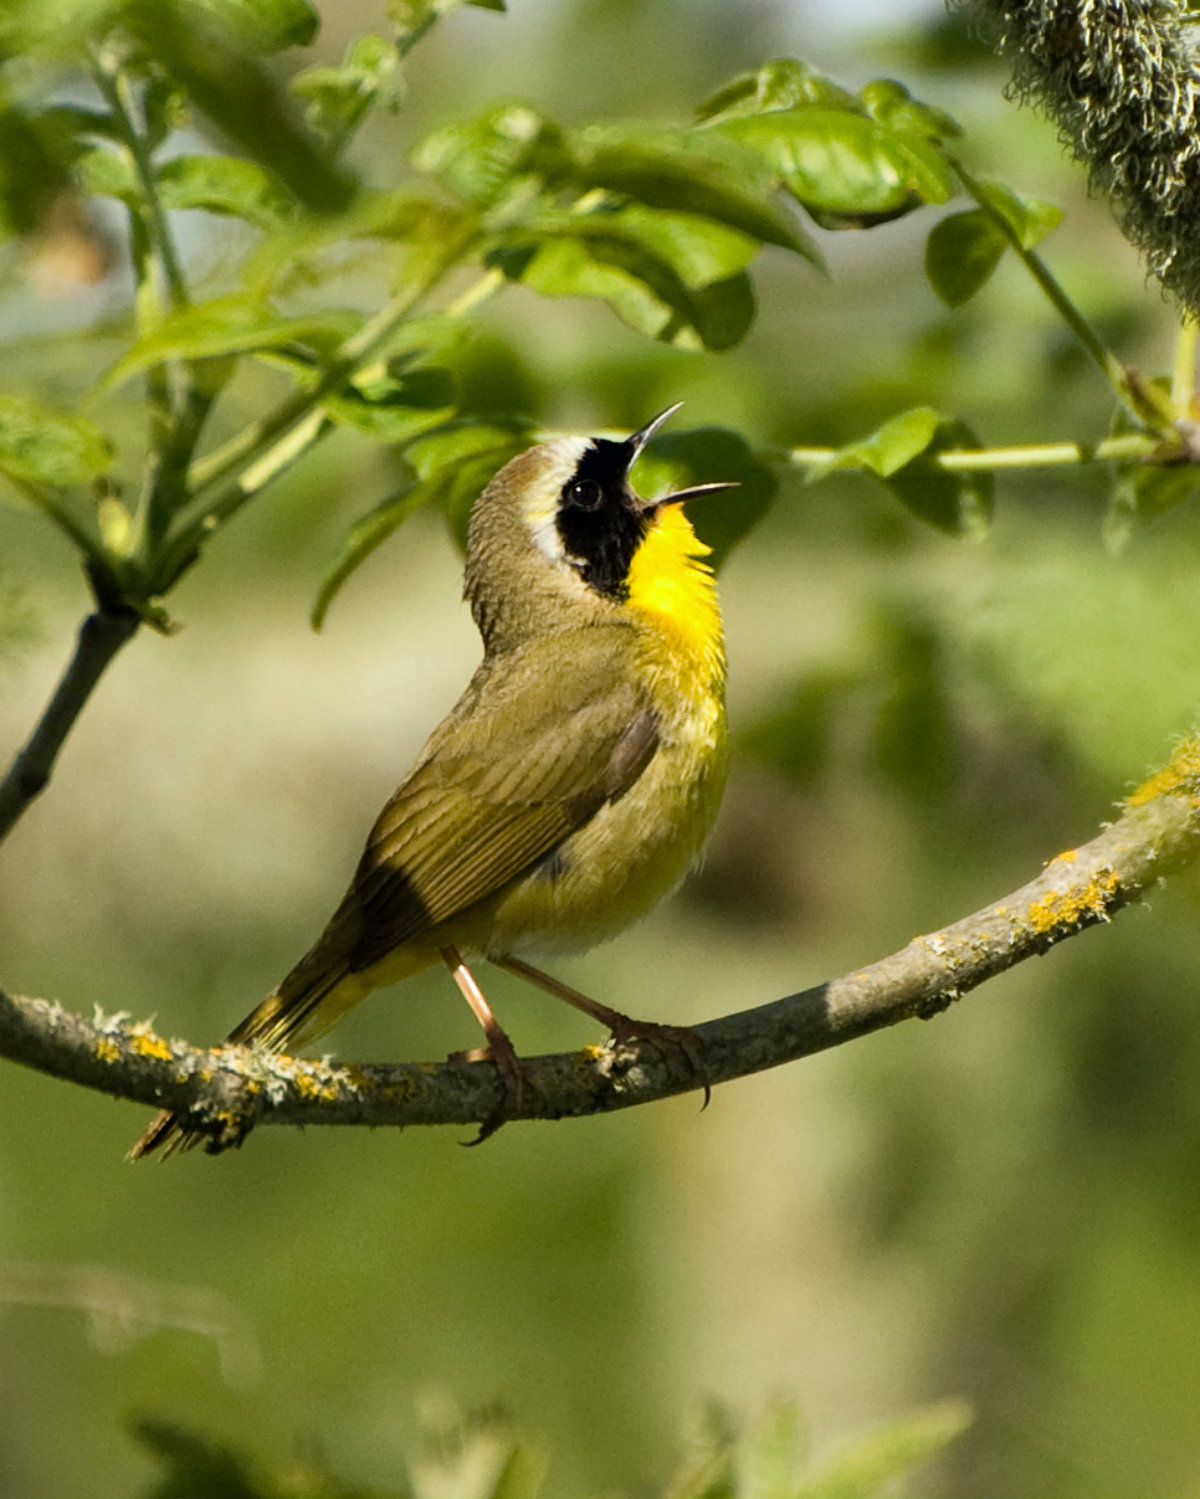 Small bird with black mask singing while perched on a branch